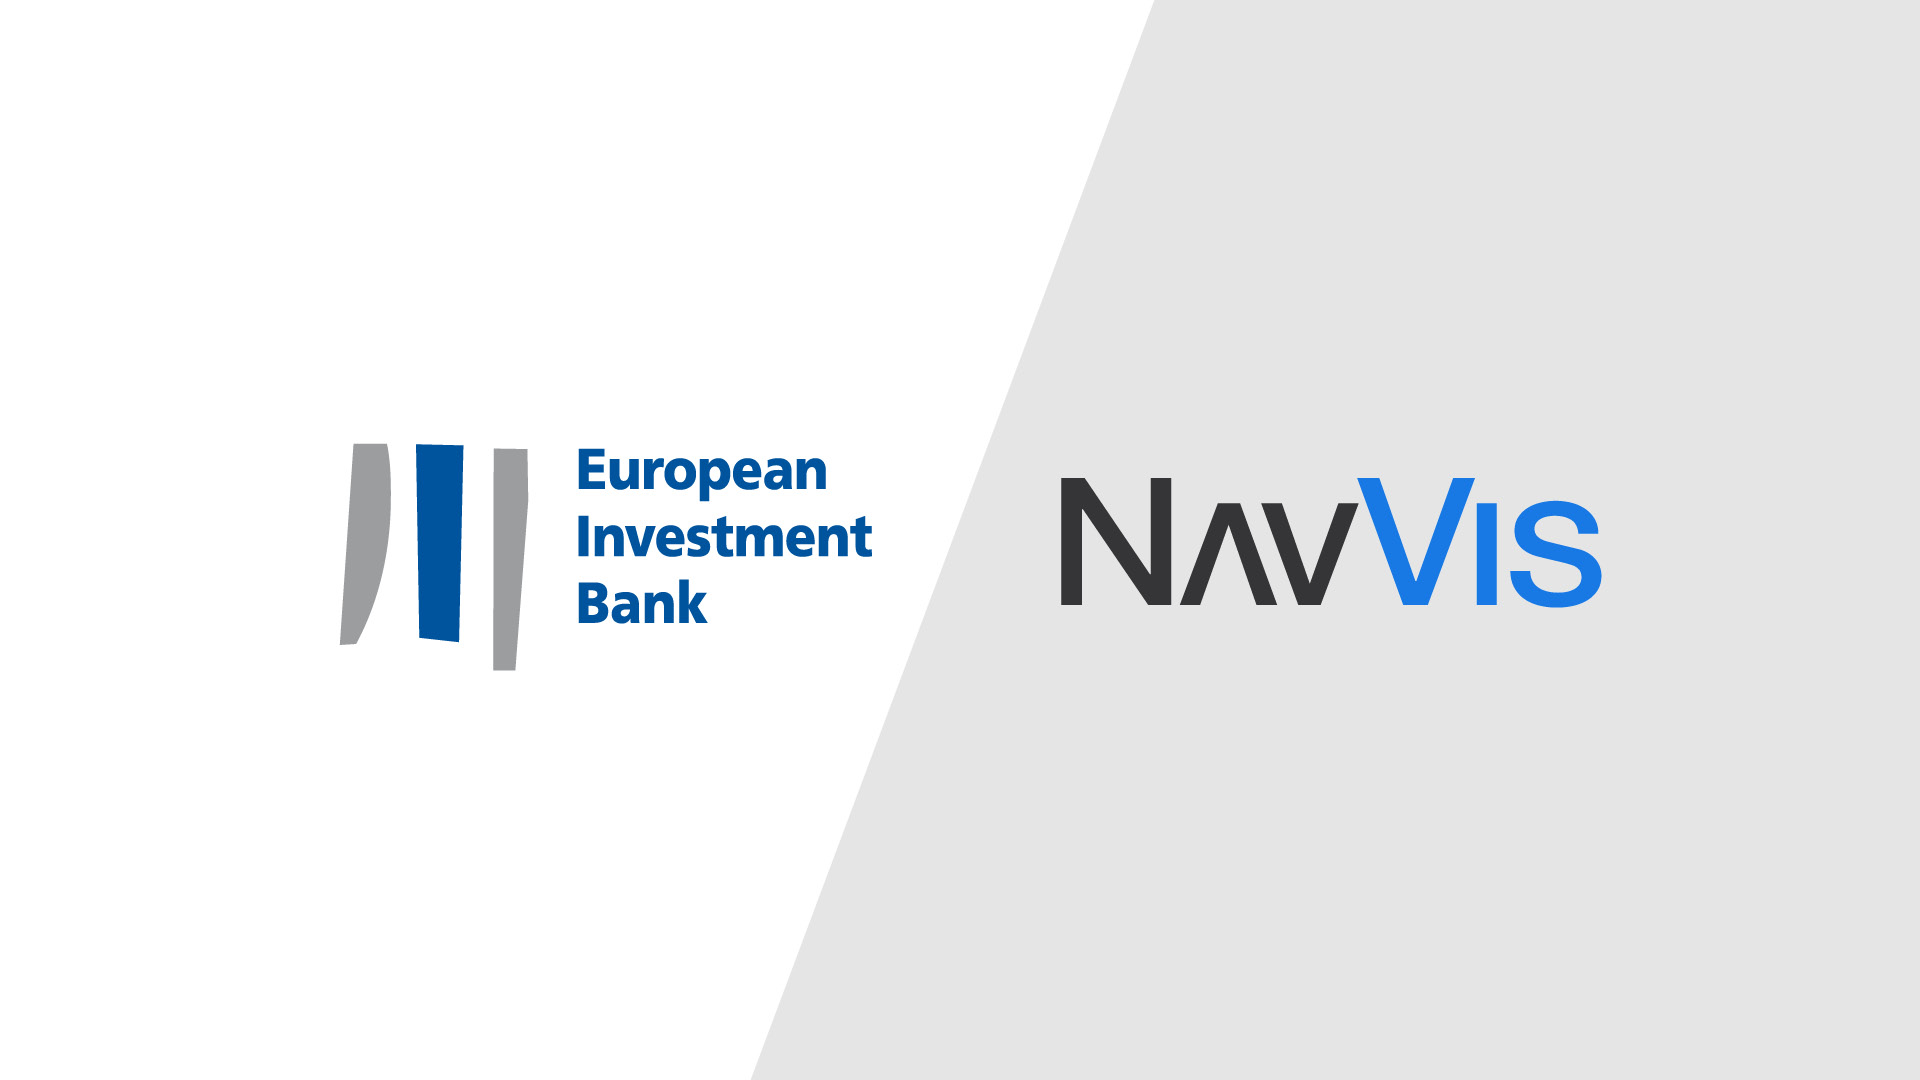 European Investment Bank provides funding of €20 million to NavVis